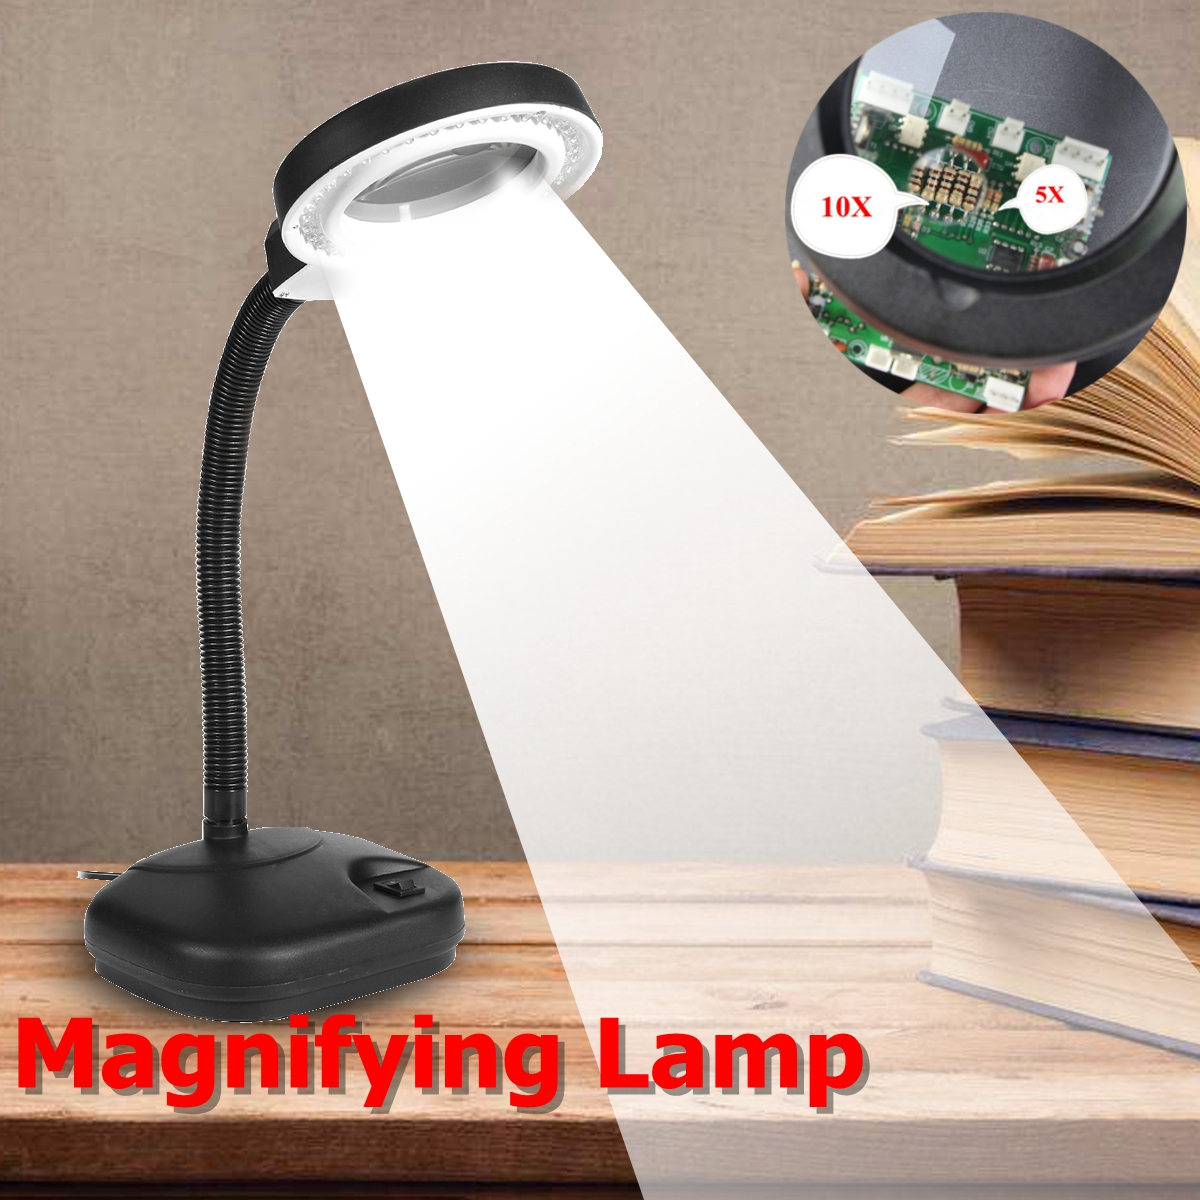 ZEAST 5X 10X Magnifier LED Desk Light Daylight Craft Glass Table Lamp 36 LED Multi-function Desktop Magnifying Lamp